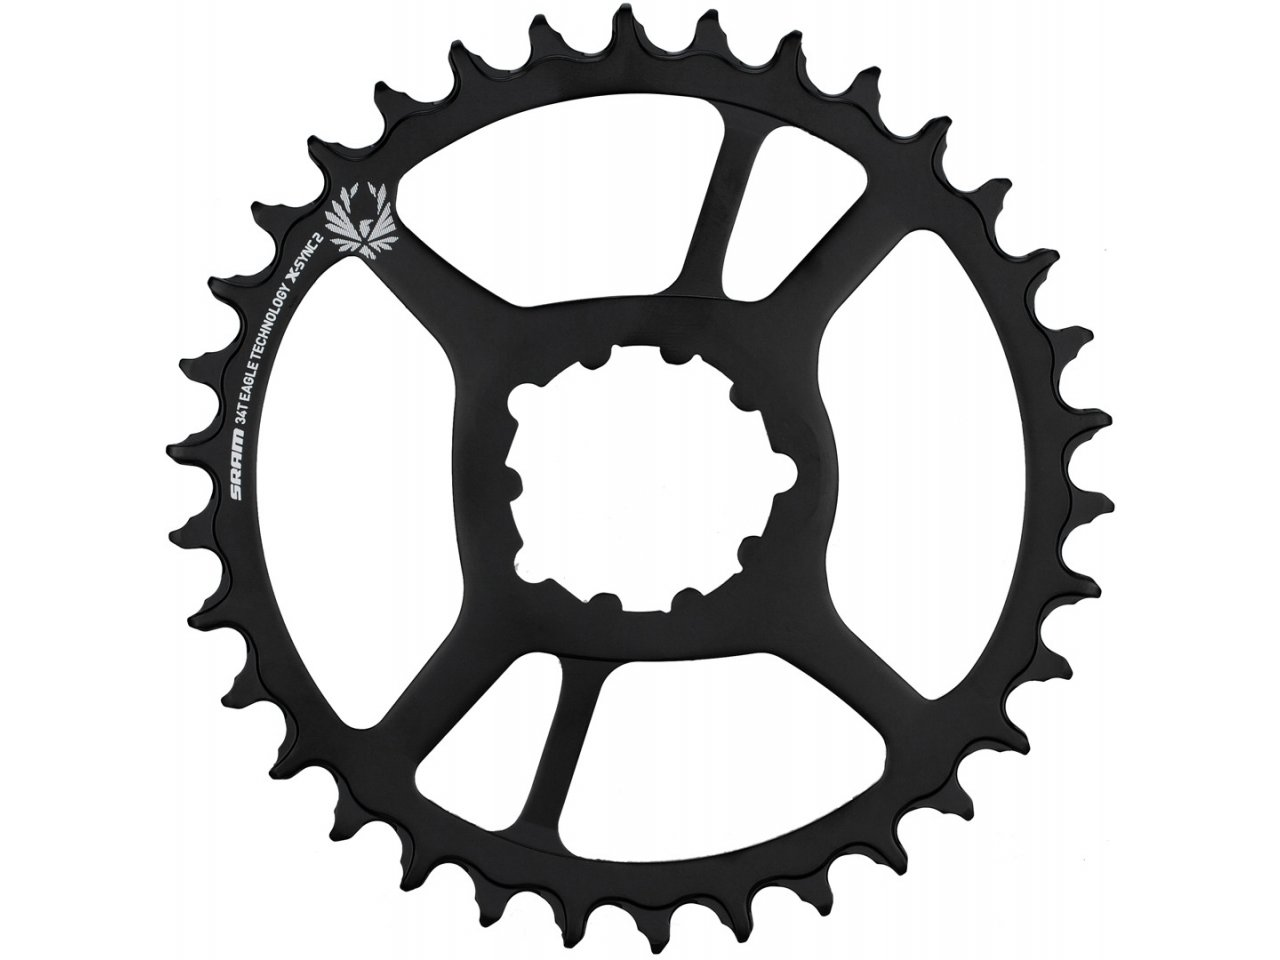 SRAM X-Sync 2 Eagle Chainring 36T Direct Mount 3mm Offset Boost Black with